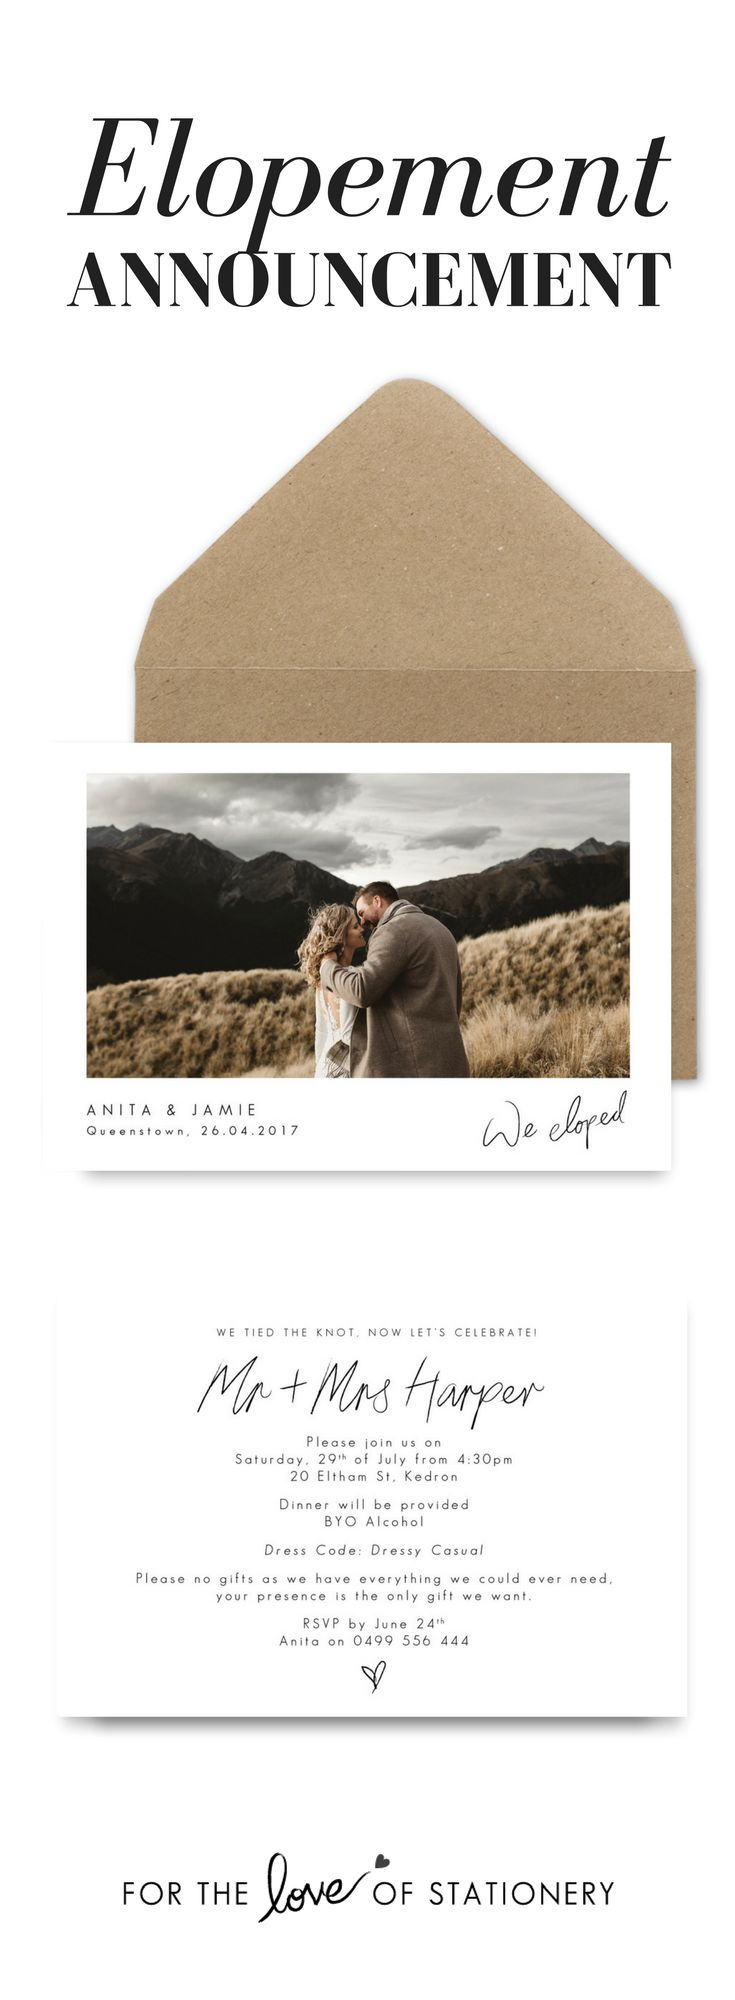 We Eloped! | Elopement Announcement | Elopement Invitation | Dawn Thomson Photography | For the Love of Stationery